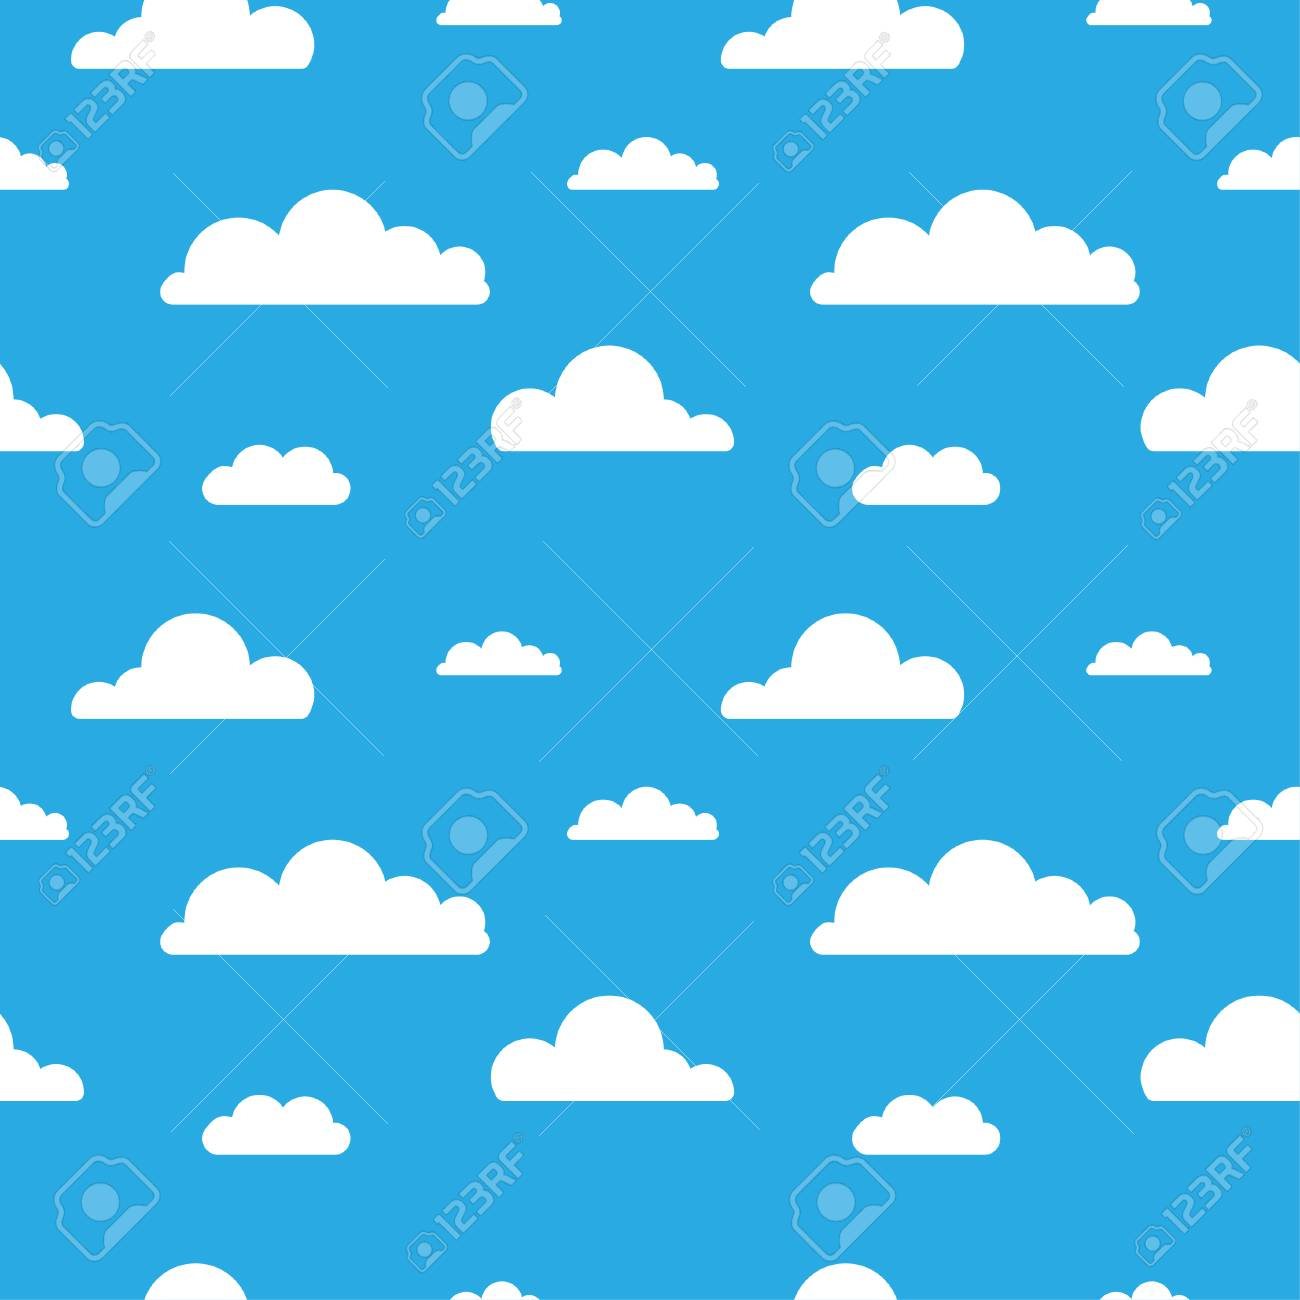 Seamless Vector Pattern With Clouds On Blue Background Cartoon